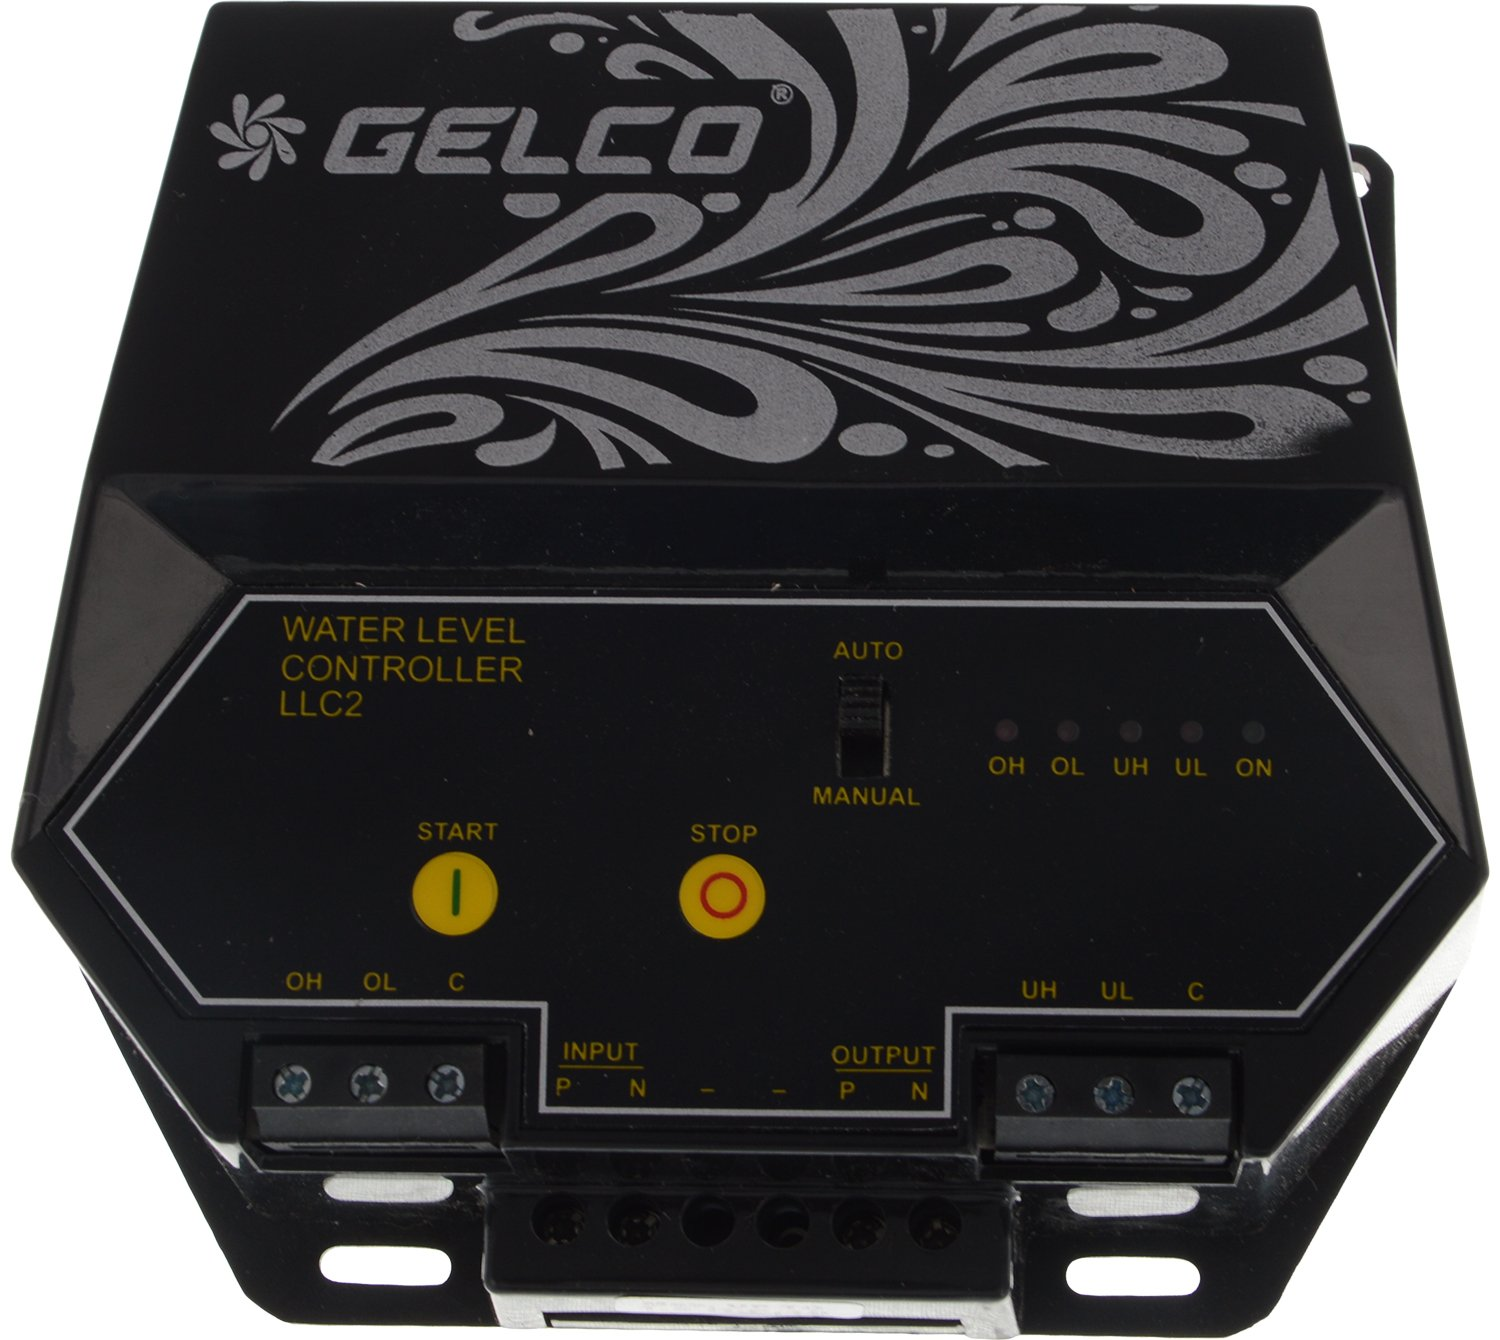 71E5b3252mL._SL1500_ buy gelco llc 2 plastic 230 volts water level controller (black ellico water level controller wiring diagram at panicattacktreatment.co